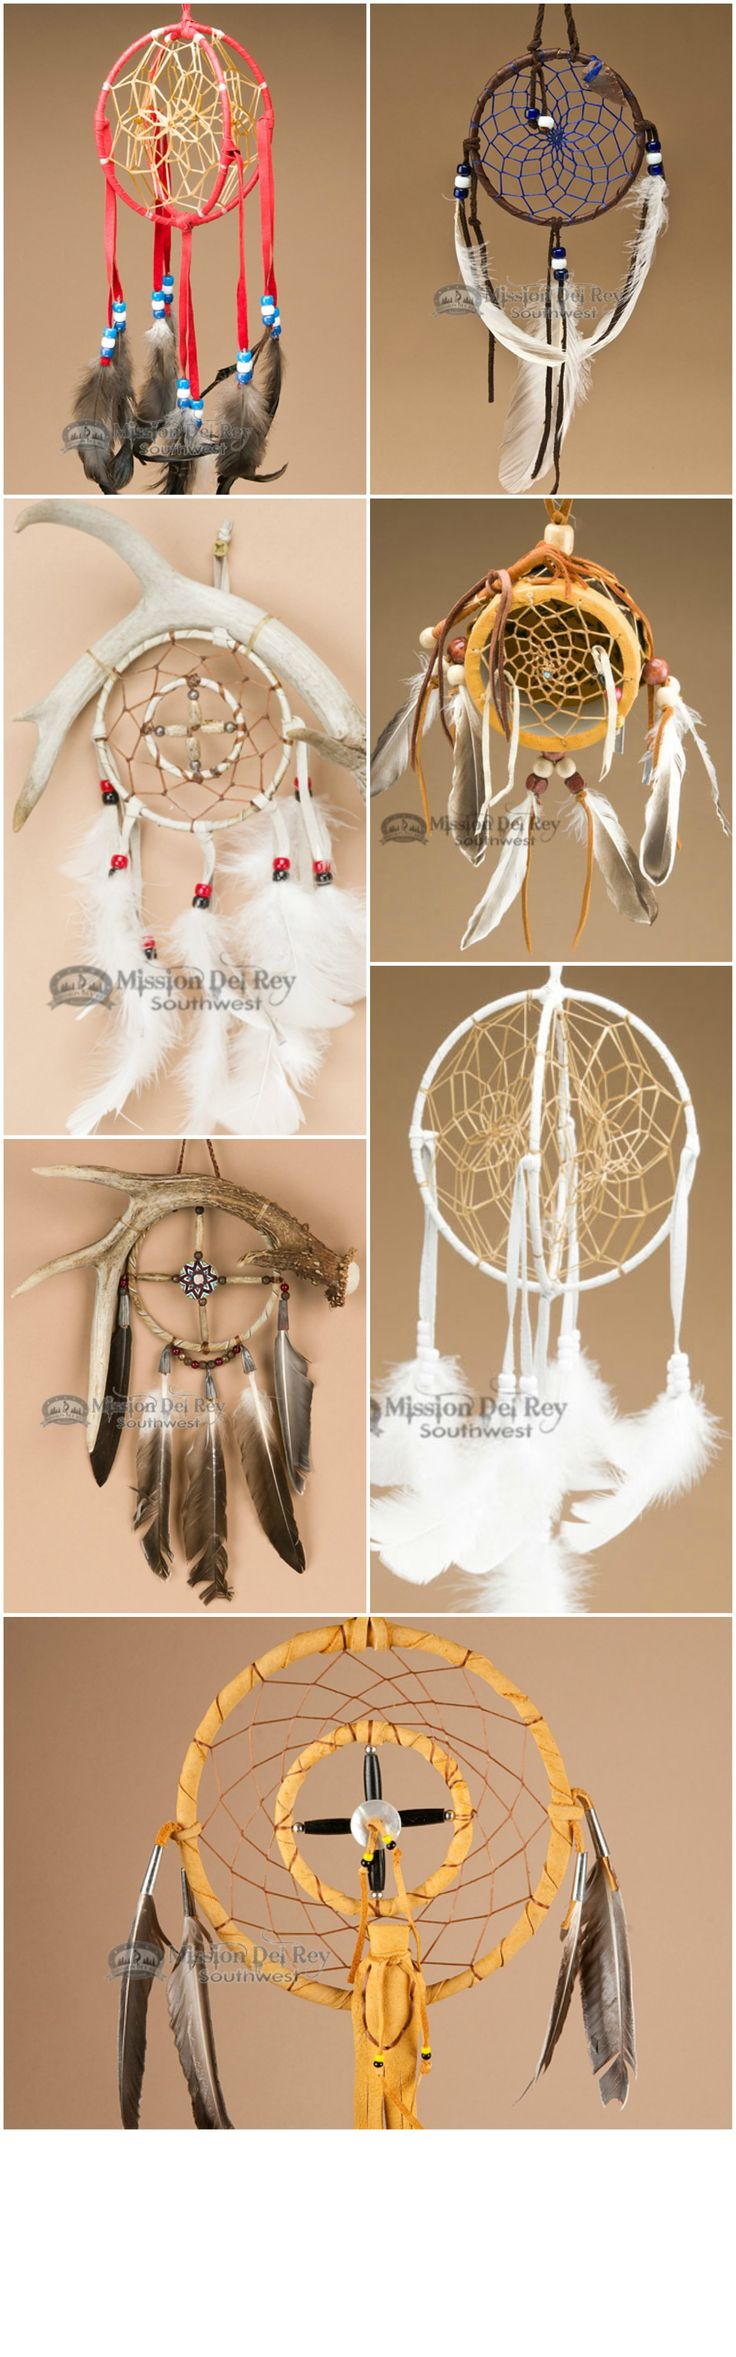 define the american dream essay why is gatsby great essay the  best ideas about american dreams native american see our quality hand crafted native american dream catchers